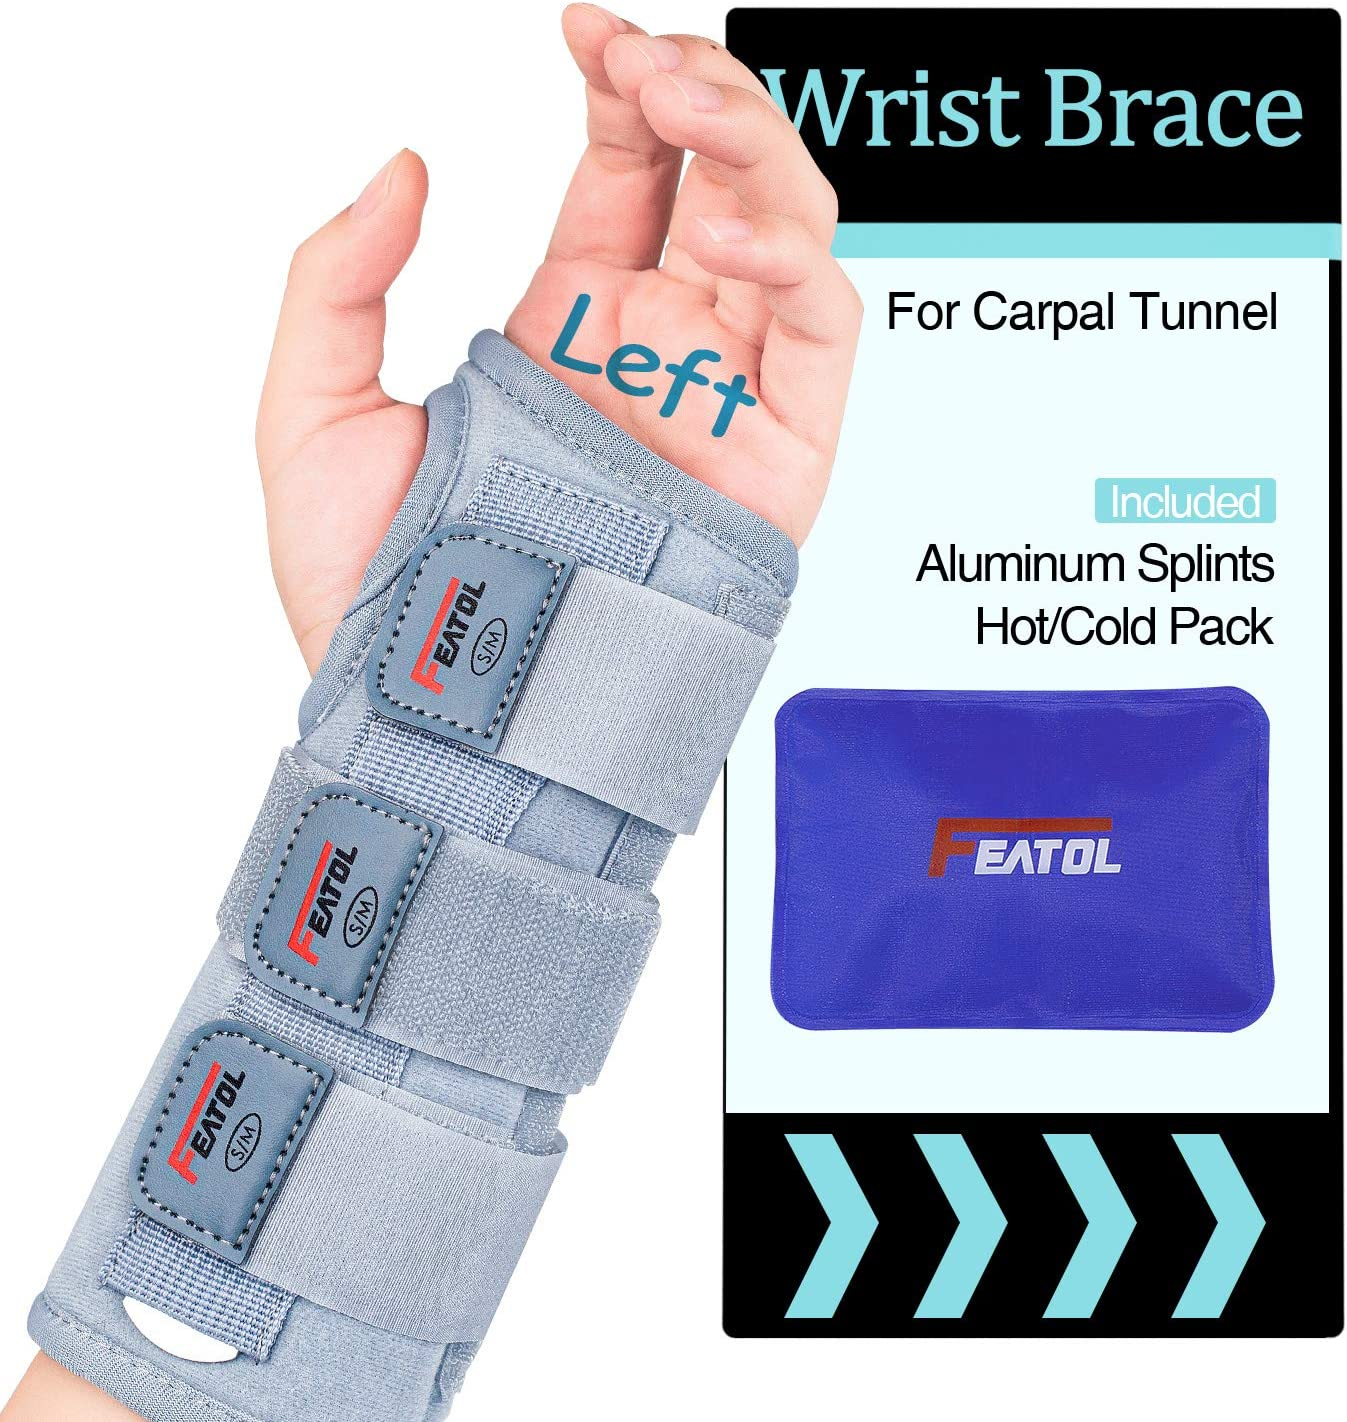 Carpal Tunnel Wrist Brace | Night Sleep Support Brace, Removable Metal Wrist Splint- Hot/Ice Pack, Left Hand, Large/X-Large, Adjustable Hand Brace for Men, Women, Relieve and Treat Wrist Pain